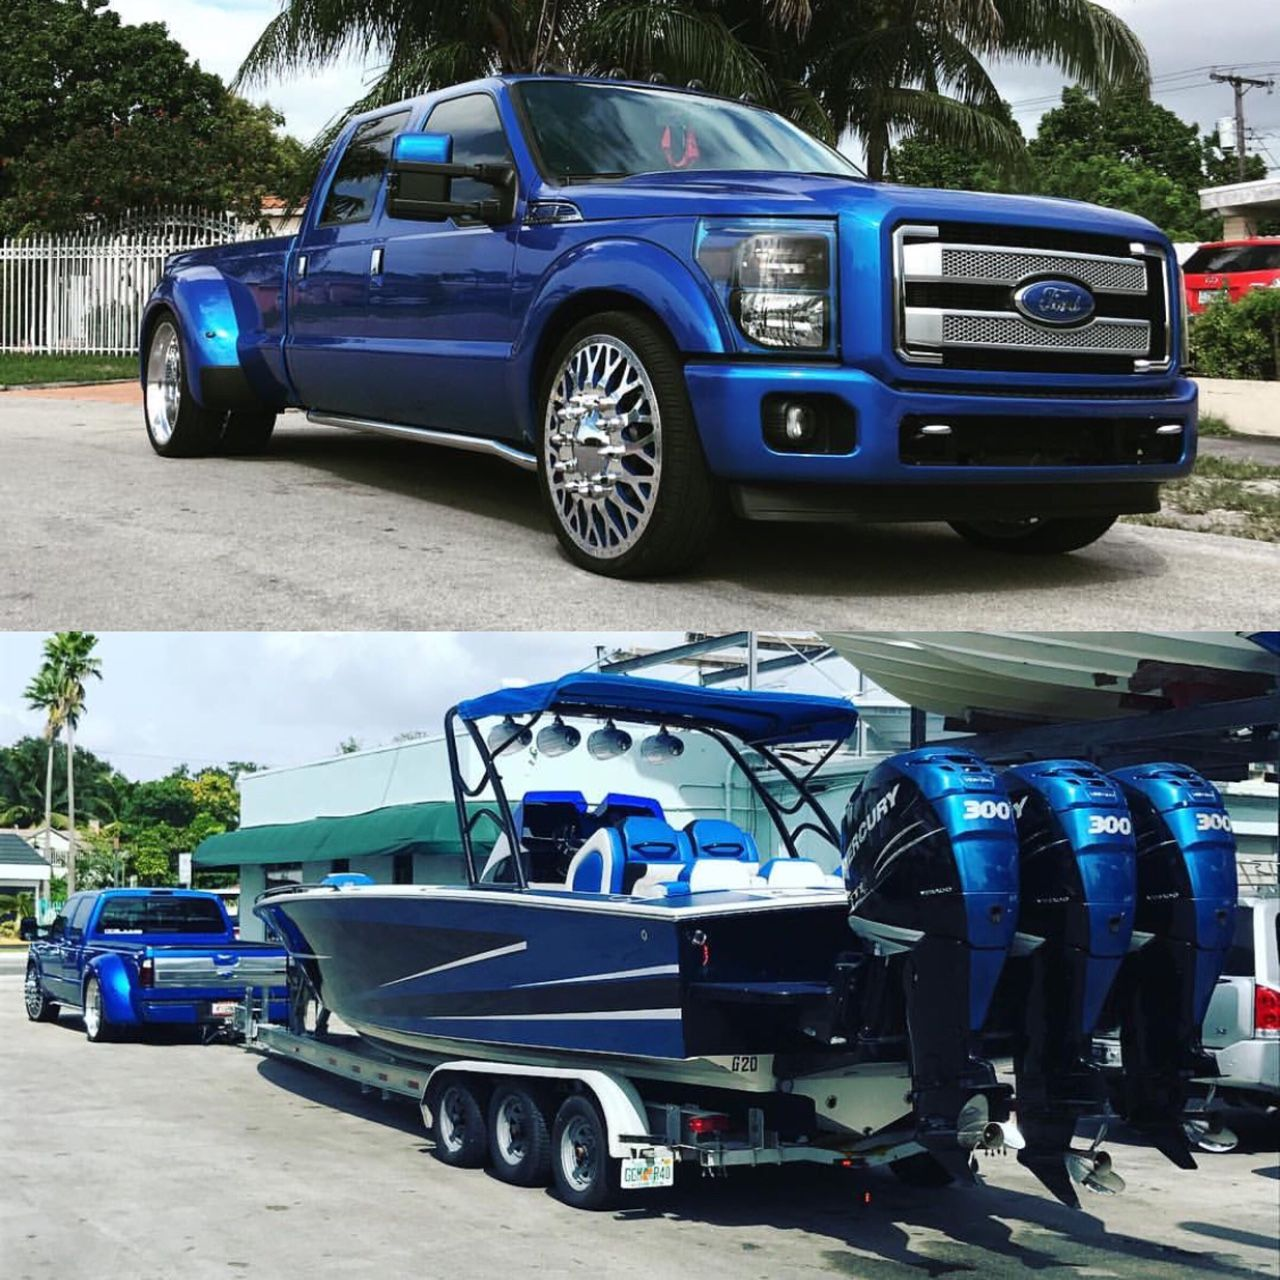 The 25 best dually trucks ideas on pinterest f350 super duty dually wheels and f350 ford